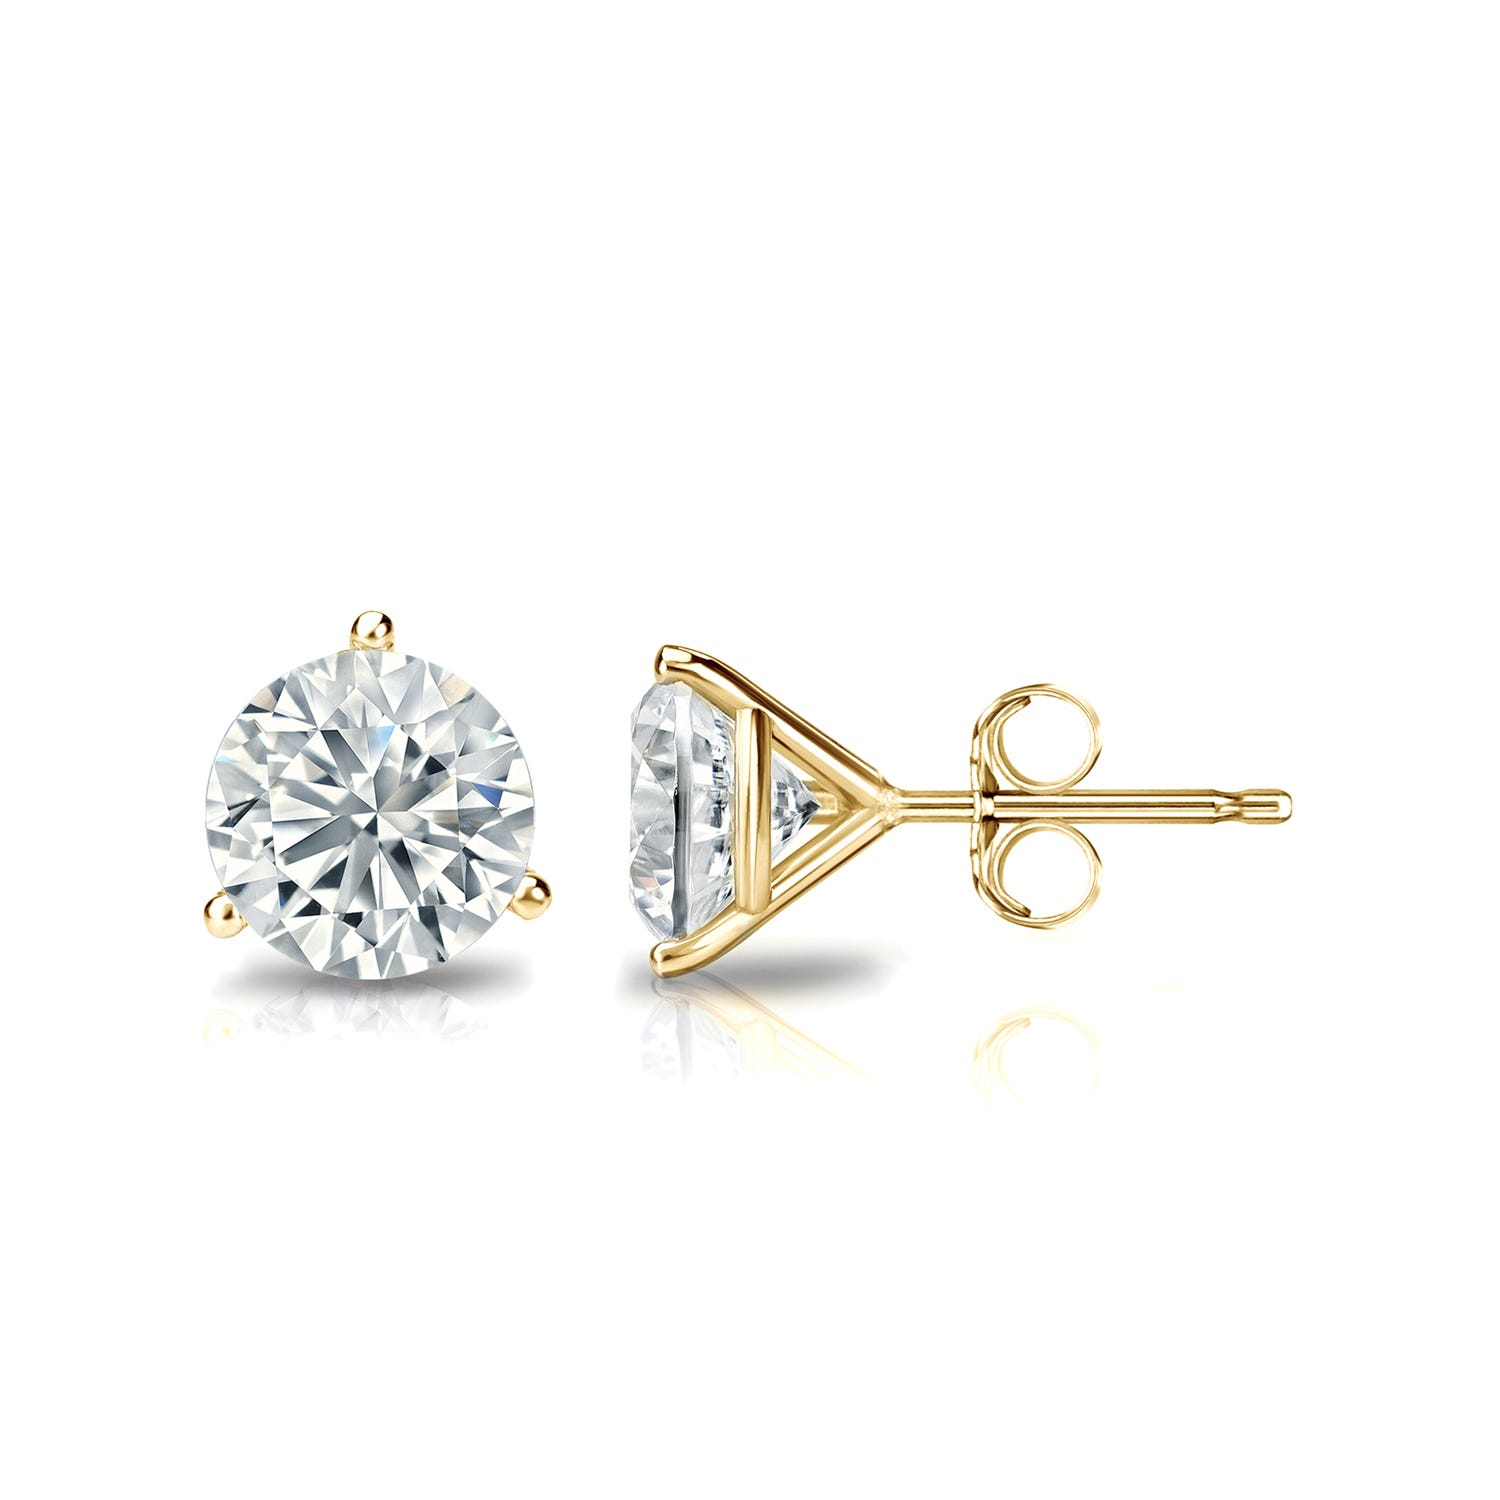 1 CTTW Round Diamond Solitaire Stud Earrings IJ SI2 in 18K Yellow Gold IGI Certified 3-Prong Setting